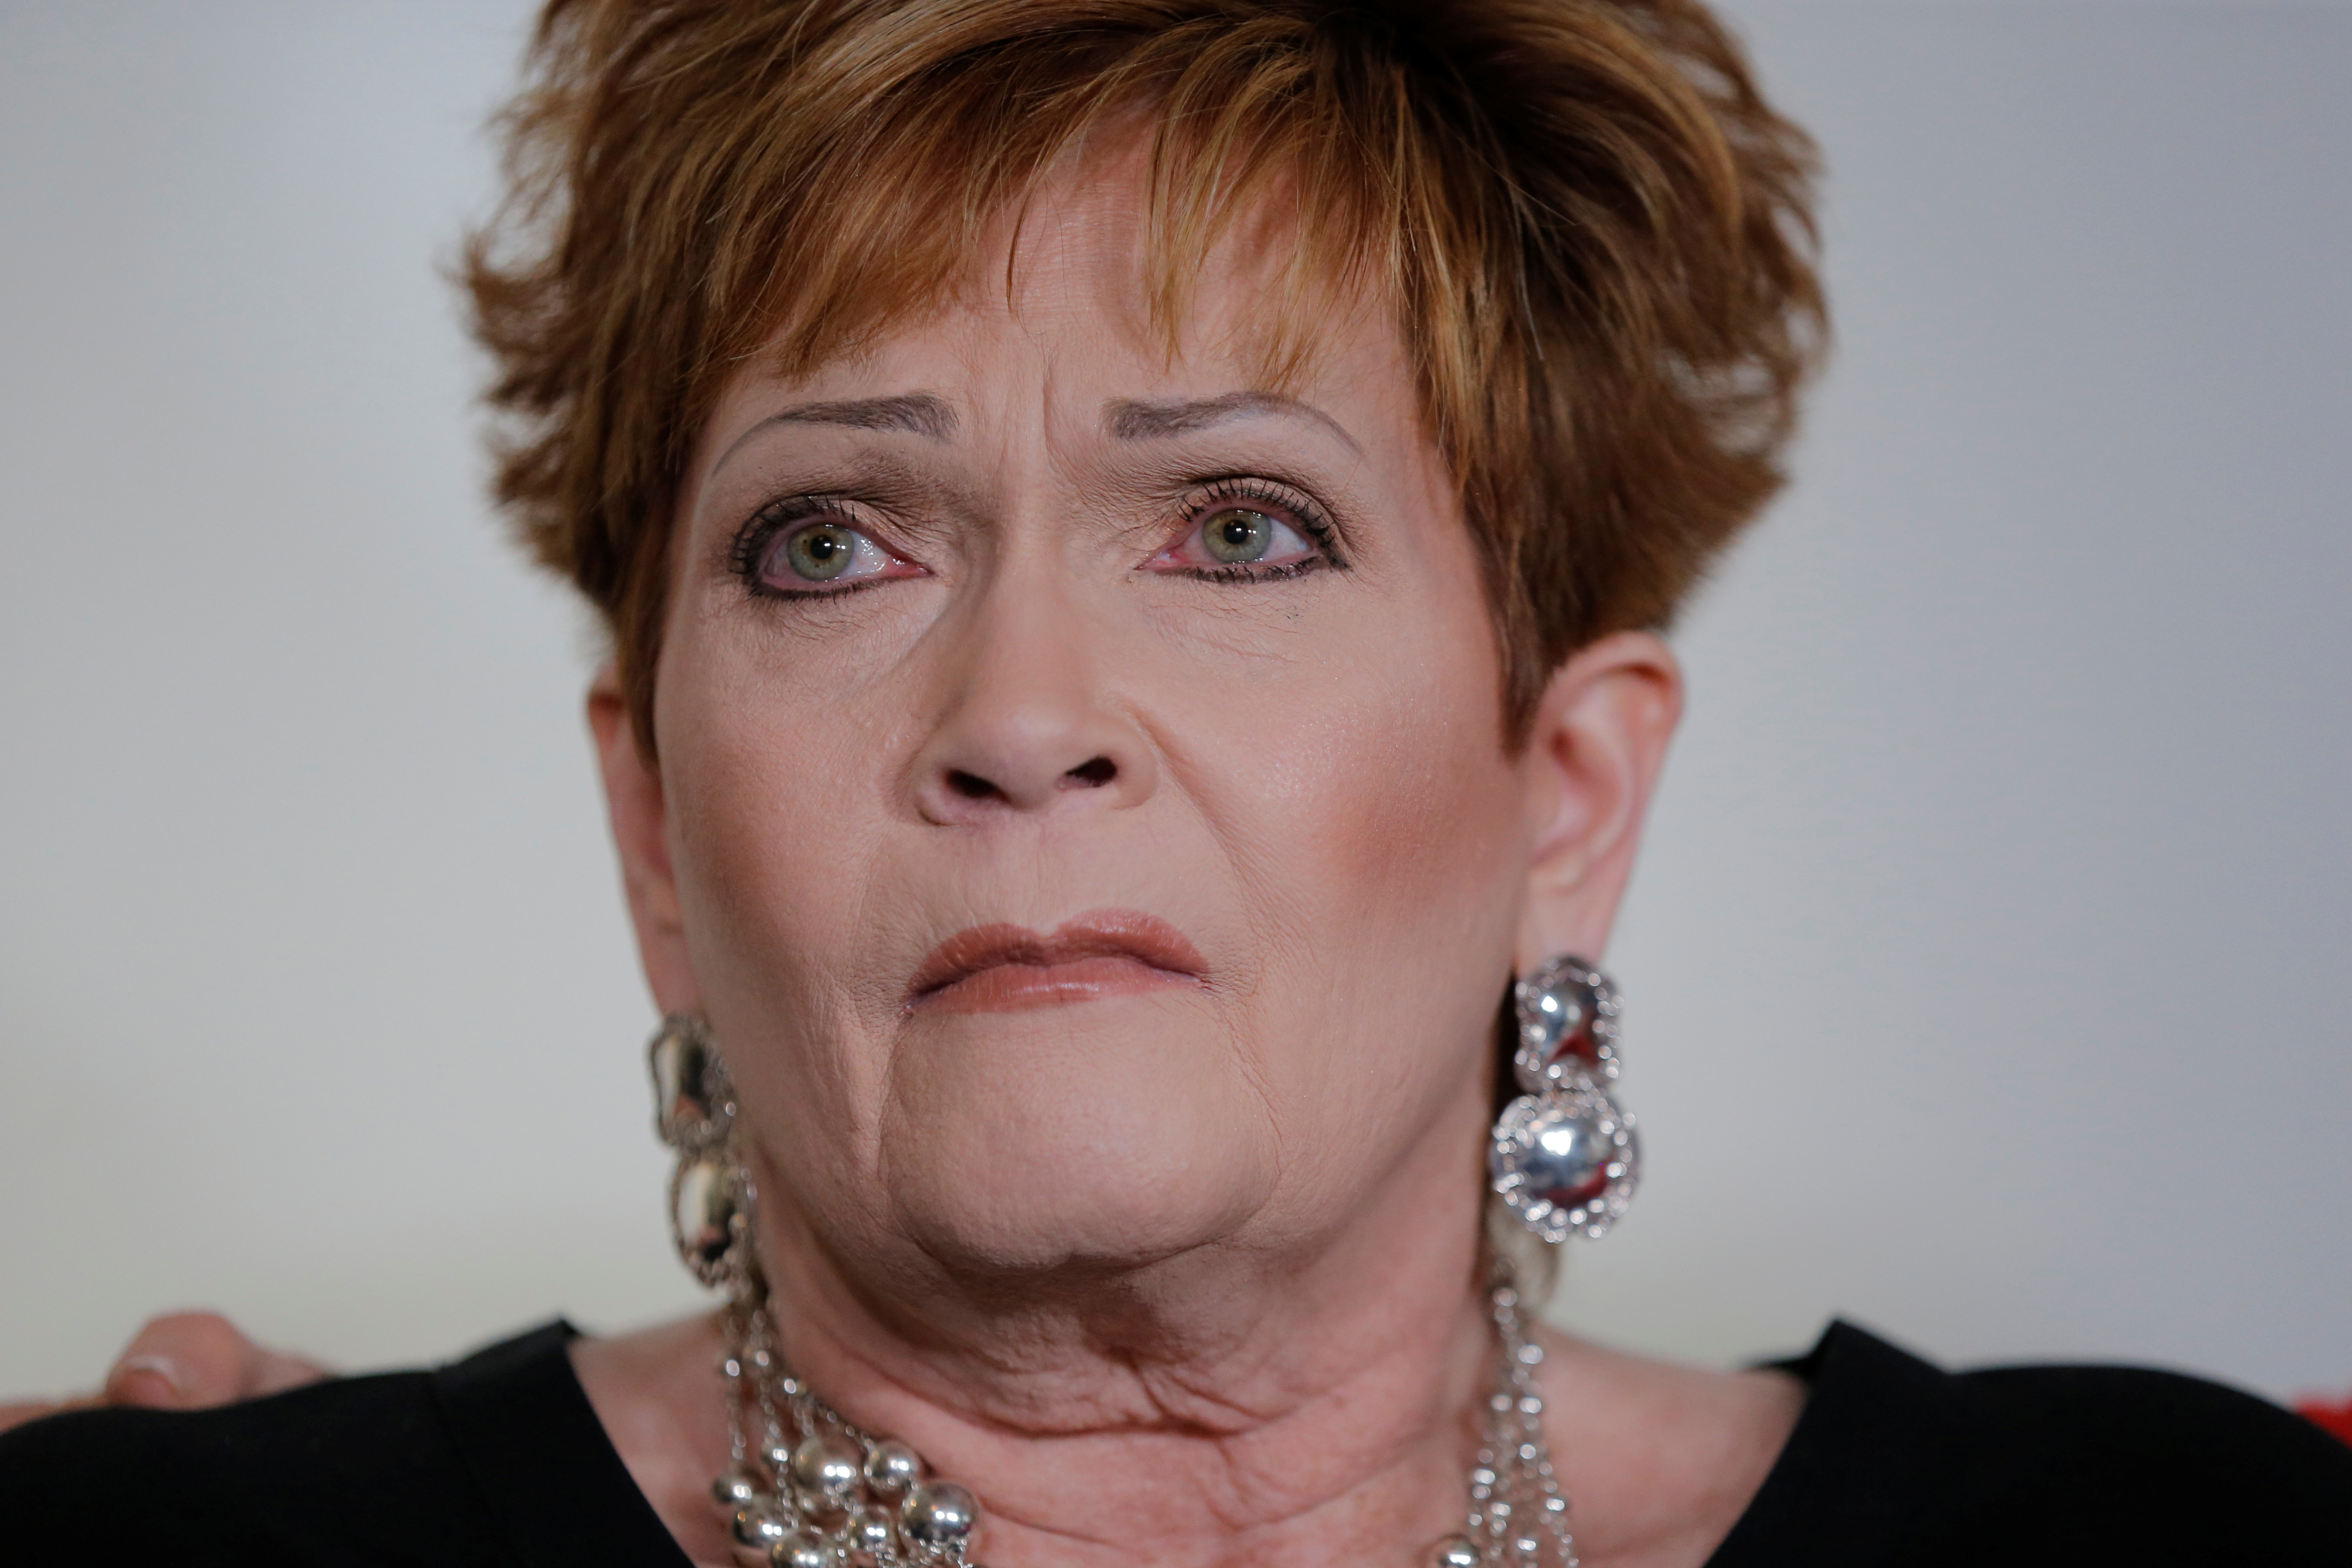 Accuser Beverly Young Nelson sits after making a statement claiming that Alabama senate candidate Roy Moore sexually harassed her when she was 16, in New York, U.S., November 13, 2017.  REUTERS/Lucas Jackson - RC1BAB04F720